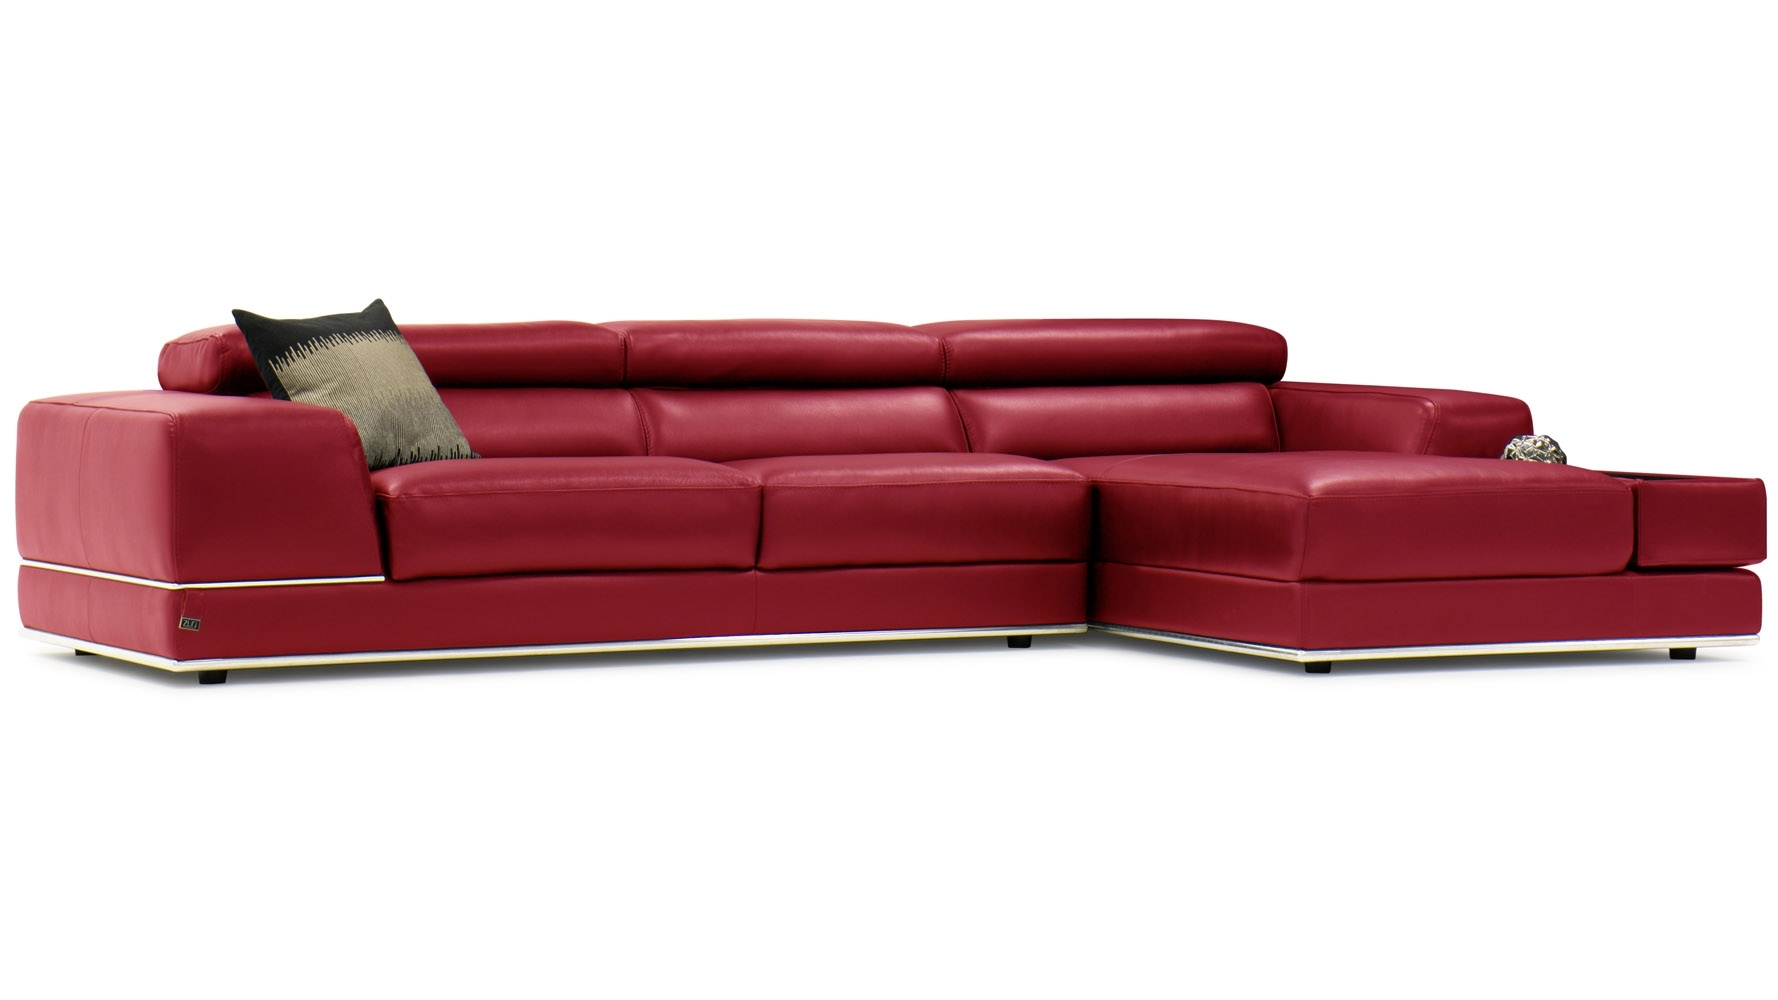 Encore Red Leather Sofa   Zuri Furniture Throughout Red Leather Sofas (Image 4 of 10)